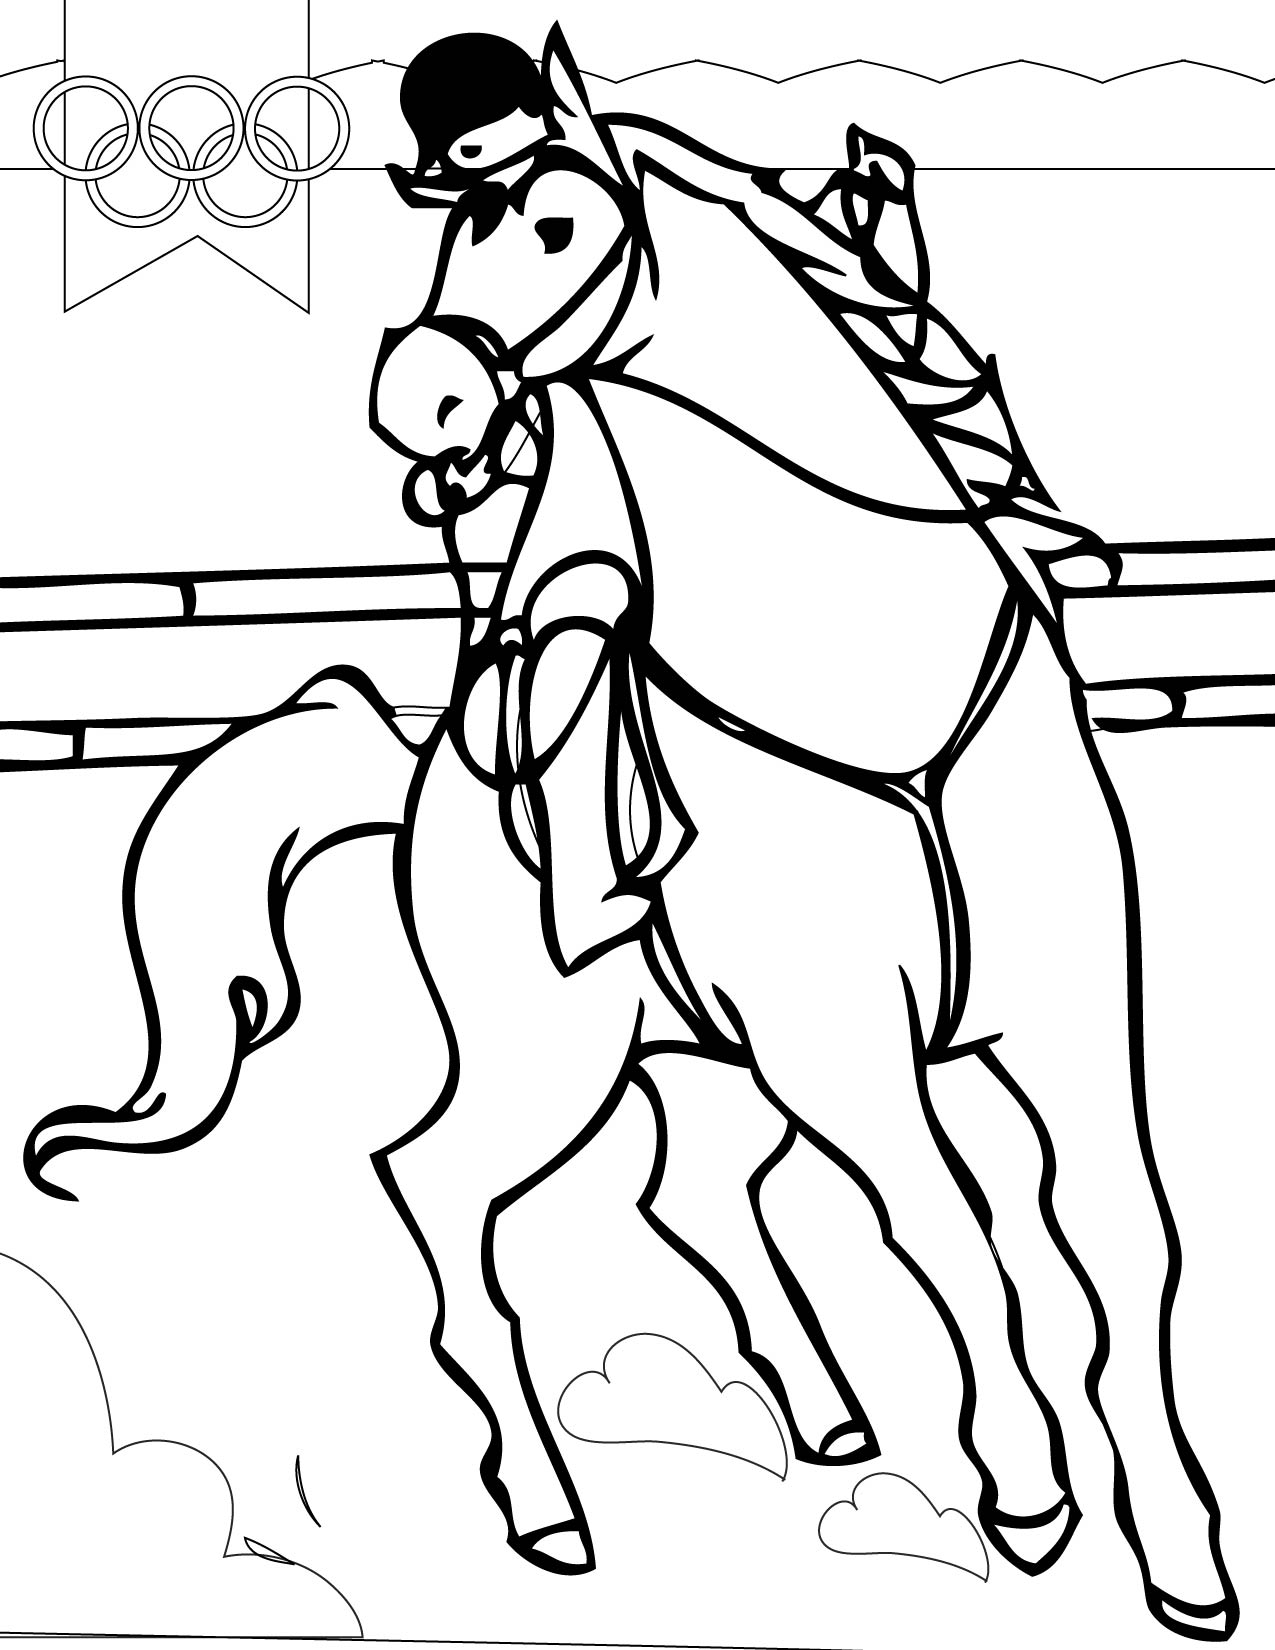 eventing coloring pages - photo#12